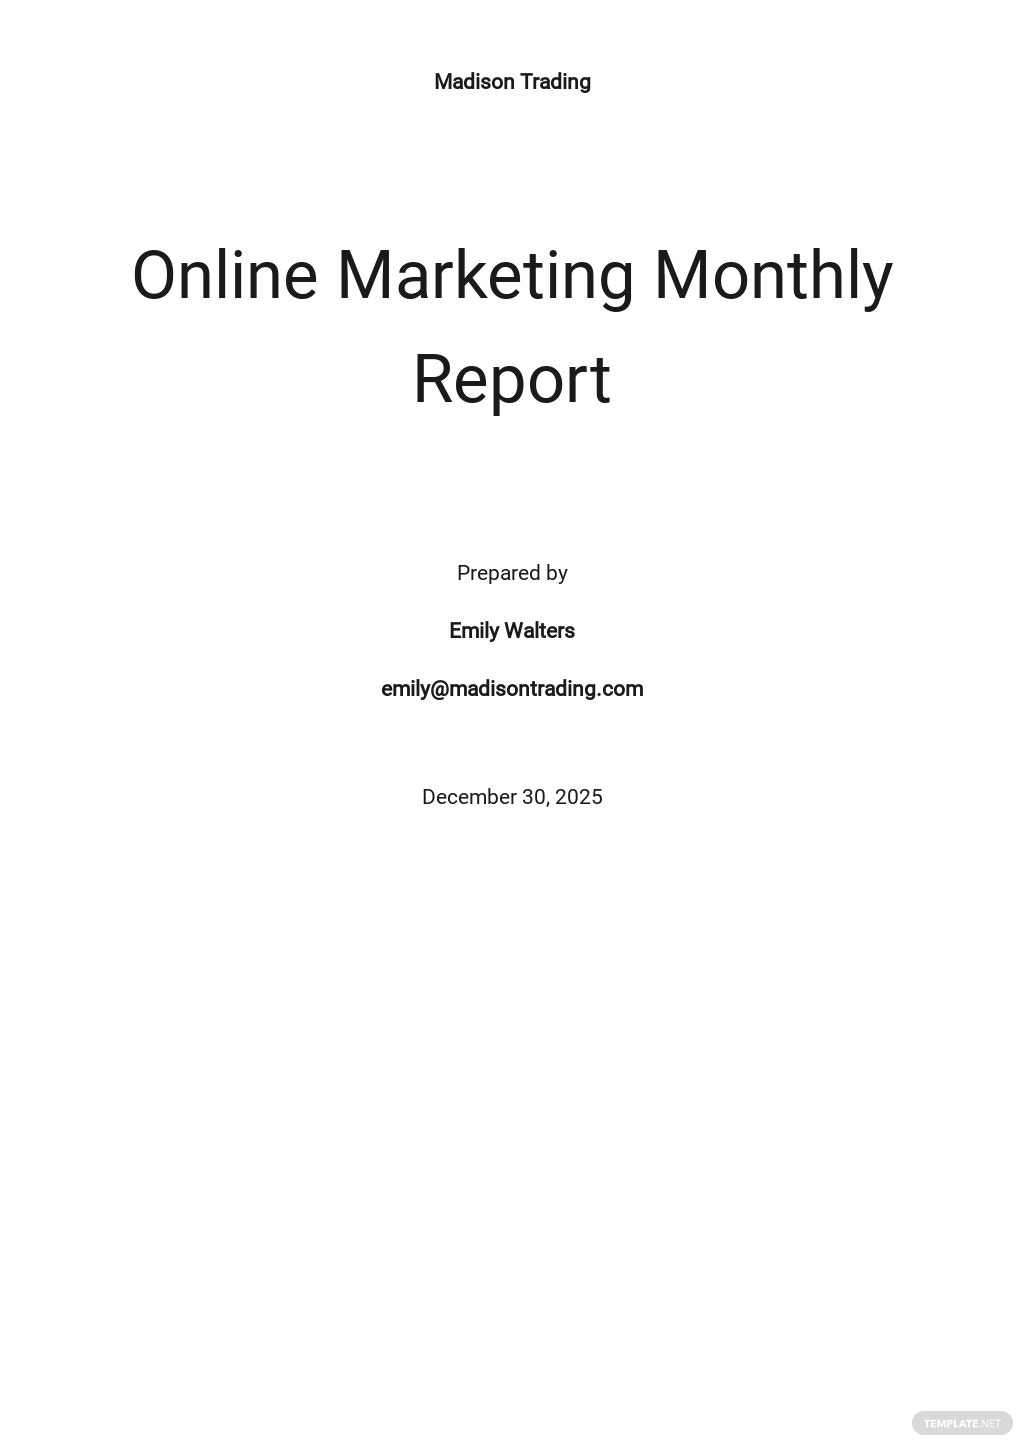 Free Monthly Report Template.jpe